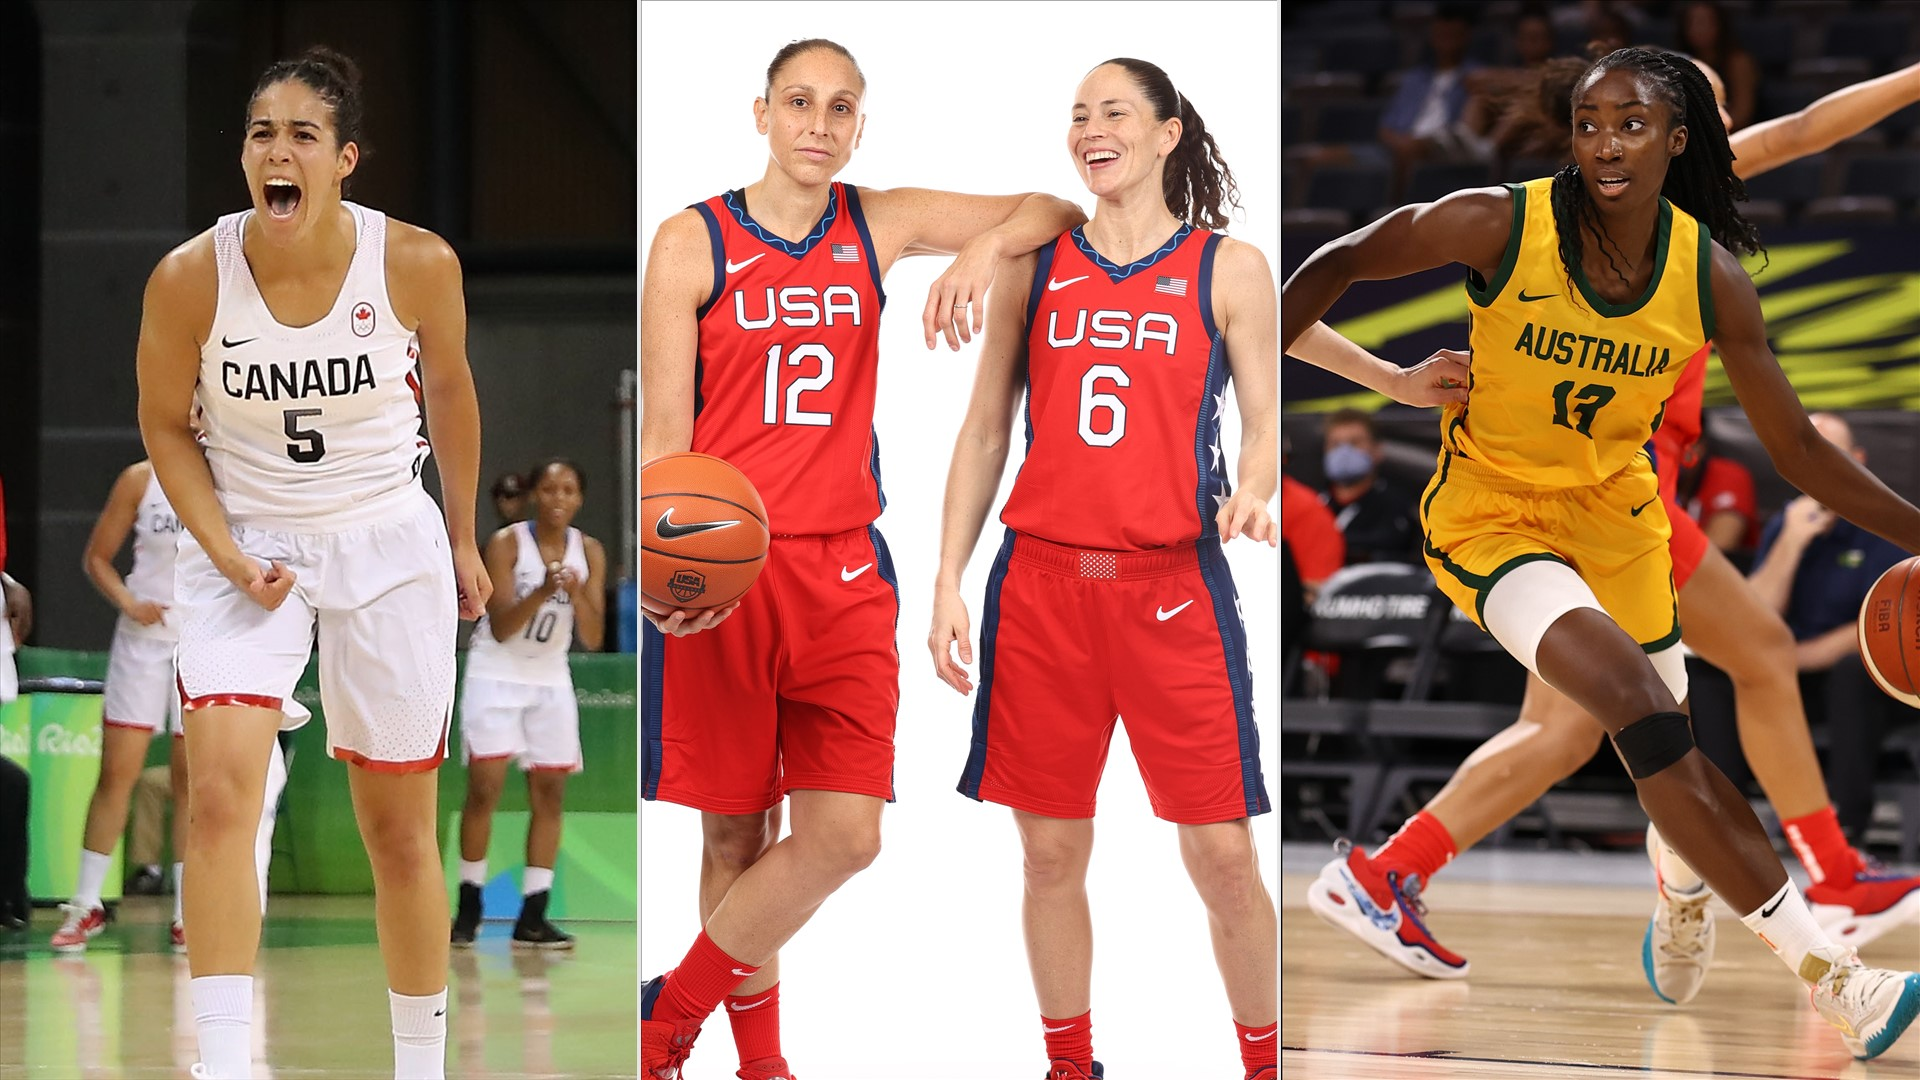 Guide to Women's Basketball at the Tokyo 2020 Olympics: Groups, Squads, WNBA Stars, Matches and More   NBA.com Spain   The Official Site of the NBA